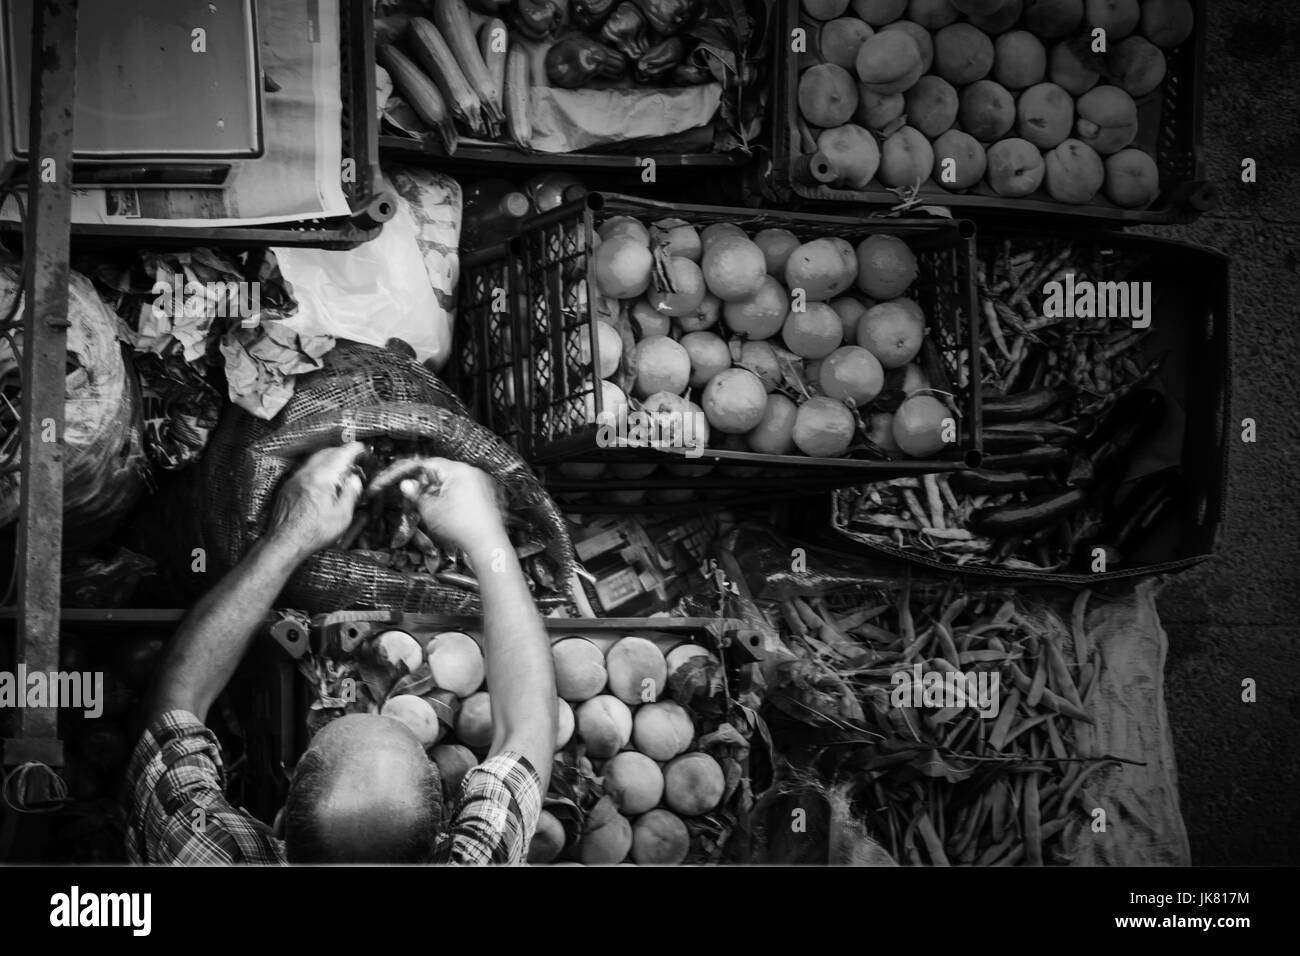 Fruit and vegetable black and white stock photos images alamy